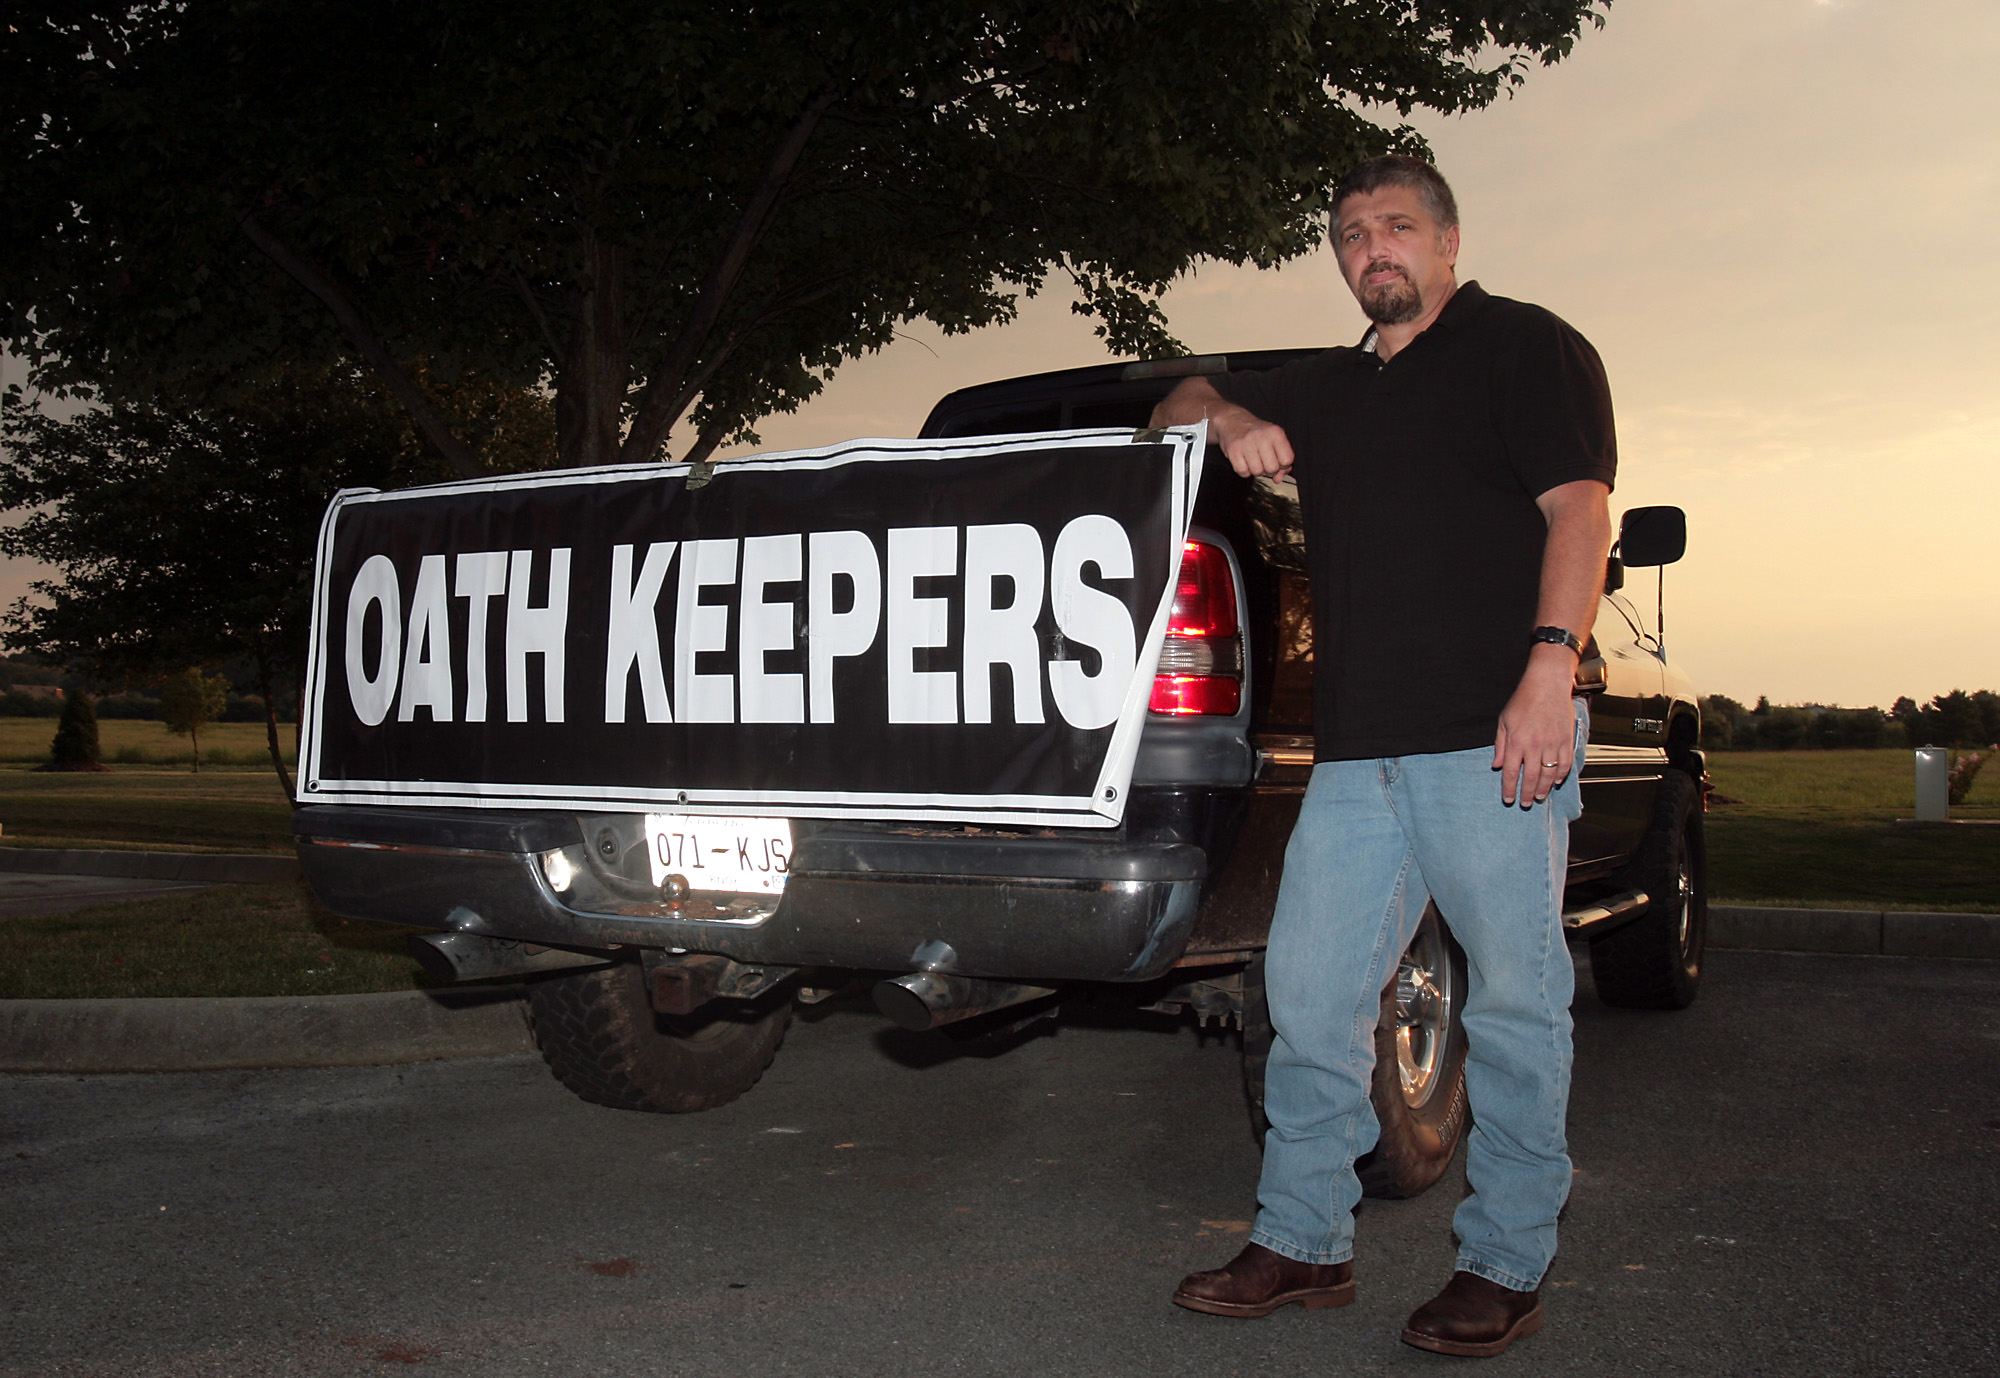 KNOXVILLE, TN - AUGUST 25, 2009:  Rand Cardwell, the Tennessee director of the Oath Keepers, is shown before their monthly meeting August 25, 2009 in Knoxville. The Oath Keepers is a newly formed group of military, police and fire fighters who continue to uphold their sworn oath and defend the constitution. (Photography by Chad Greene)